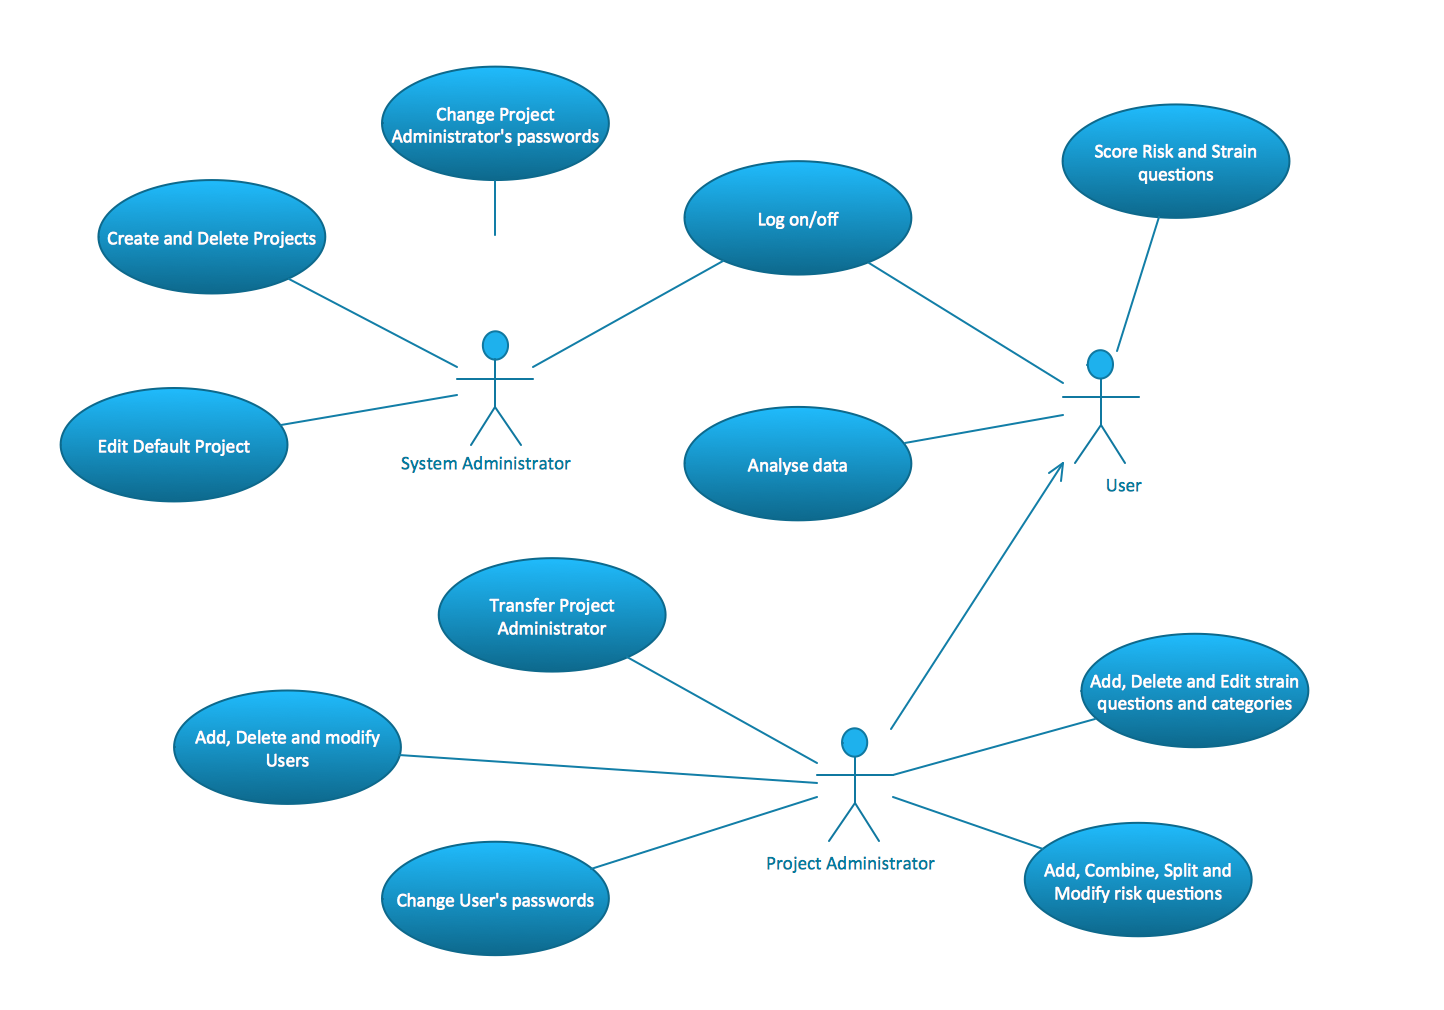 UML Use Case Diagrams. Project administrator